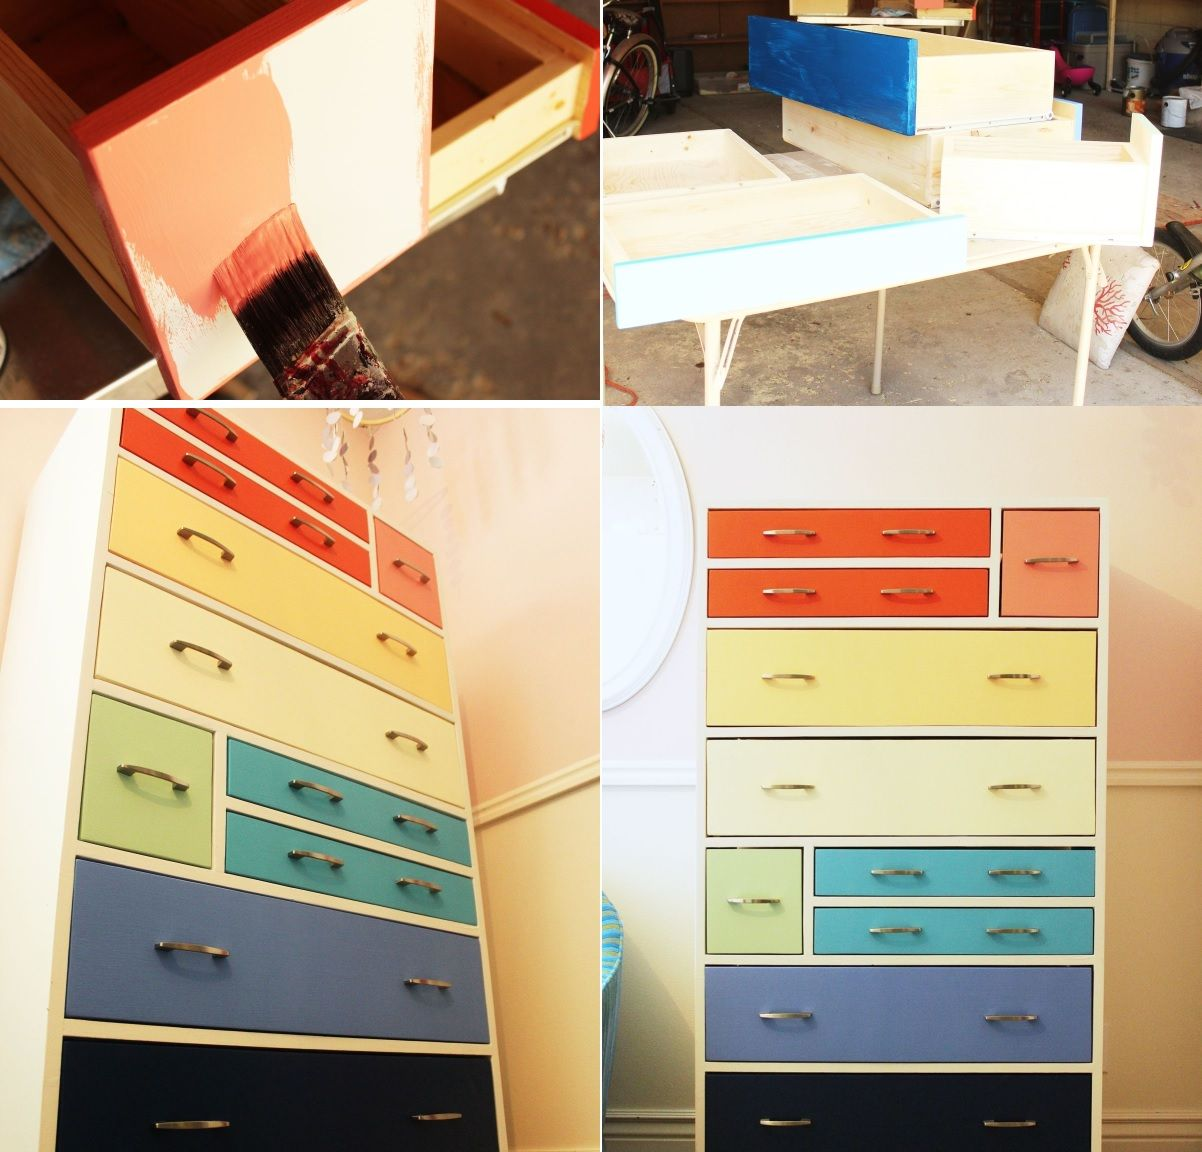 1557832104 255 how to paint furniture and to ensure the longevity of your diy projects - How To Paint Furniture And To Ensure The Longevity Of Your DIY Projects